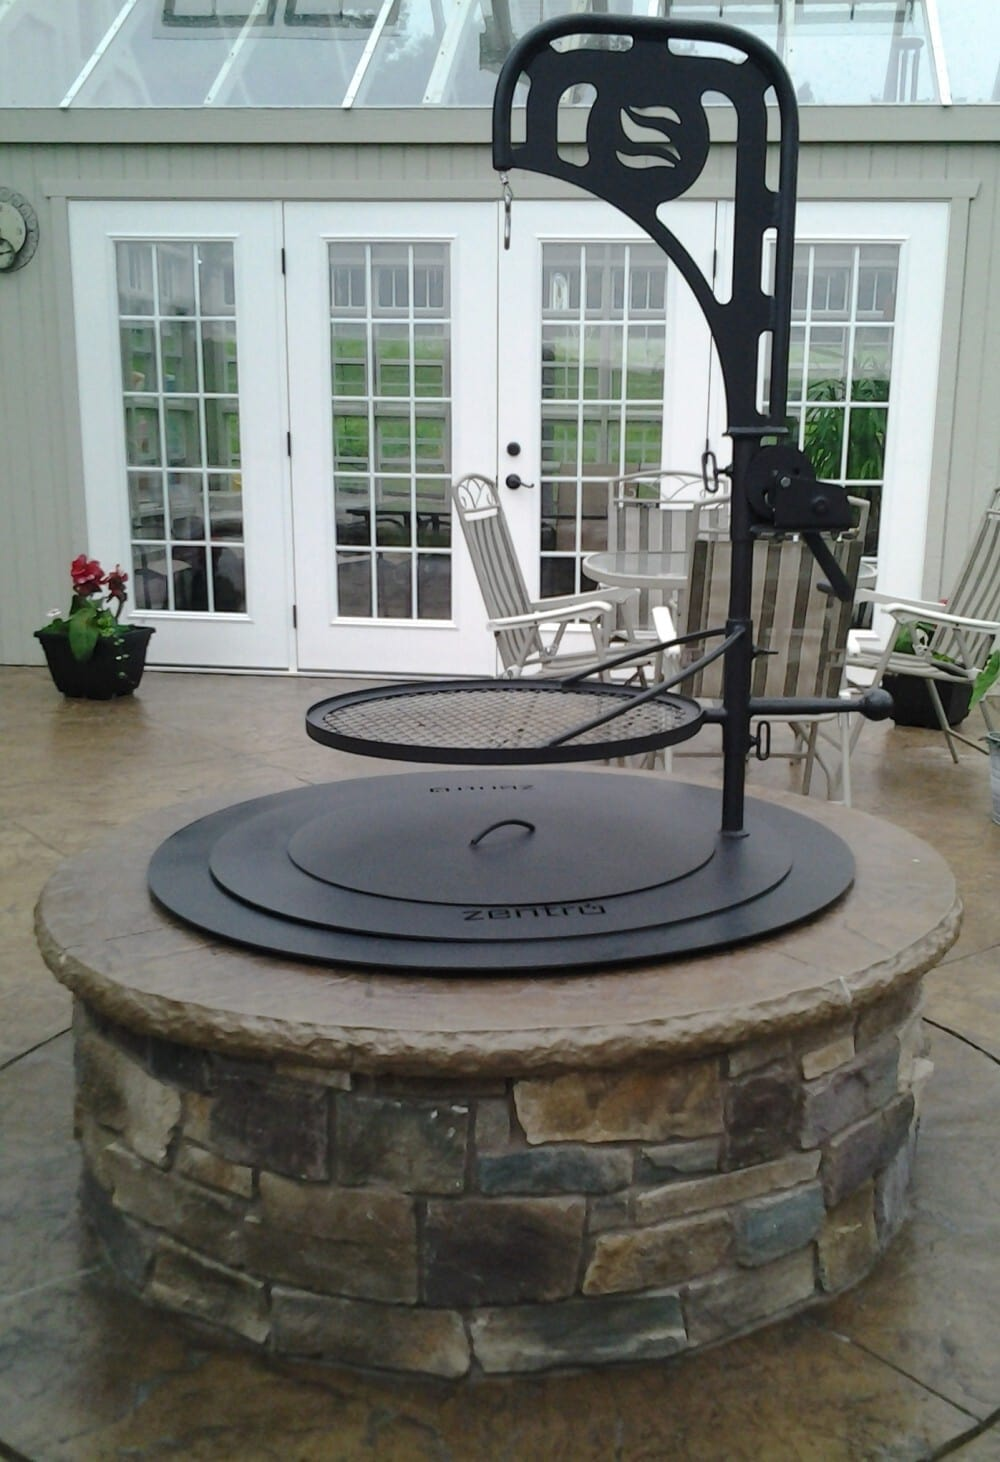 Zentro-Fire-Pit-Kit - Fire Pits - New England Silica, Inc.